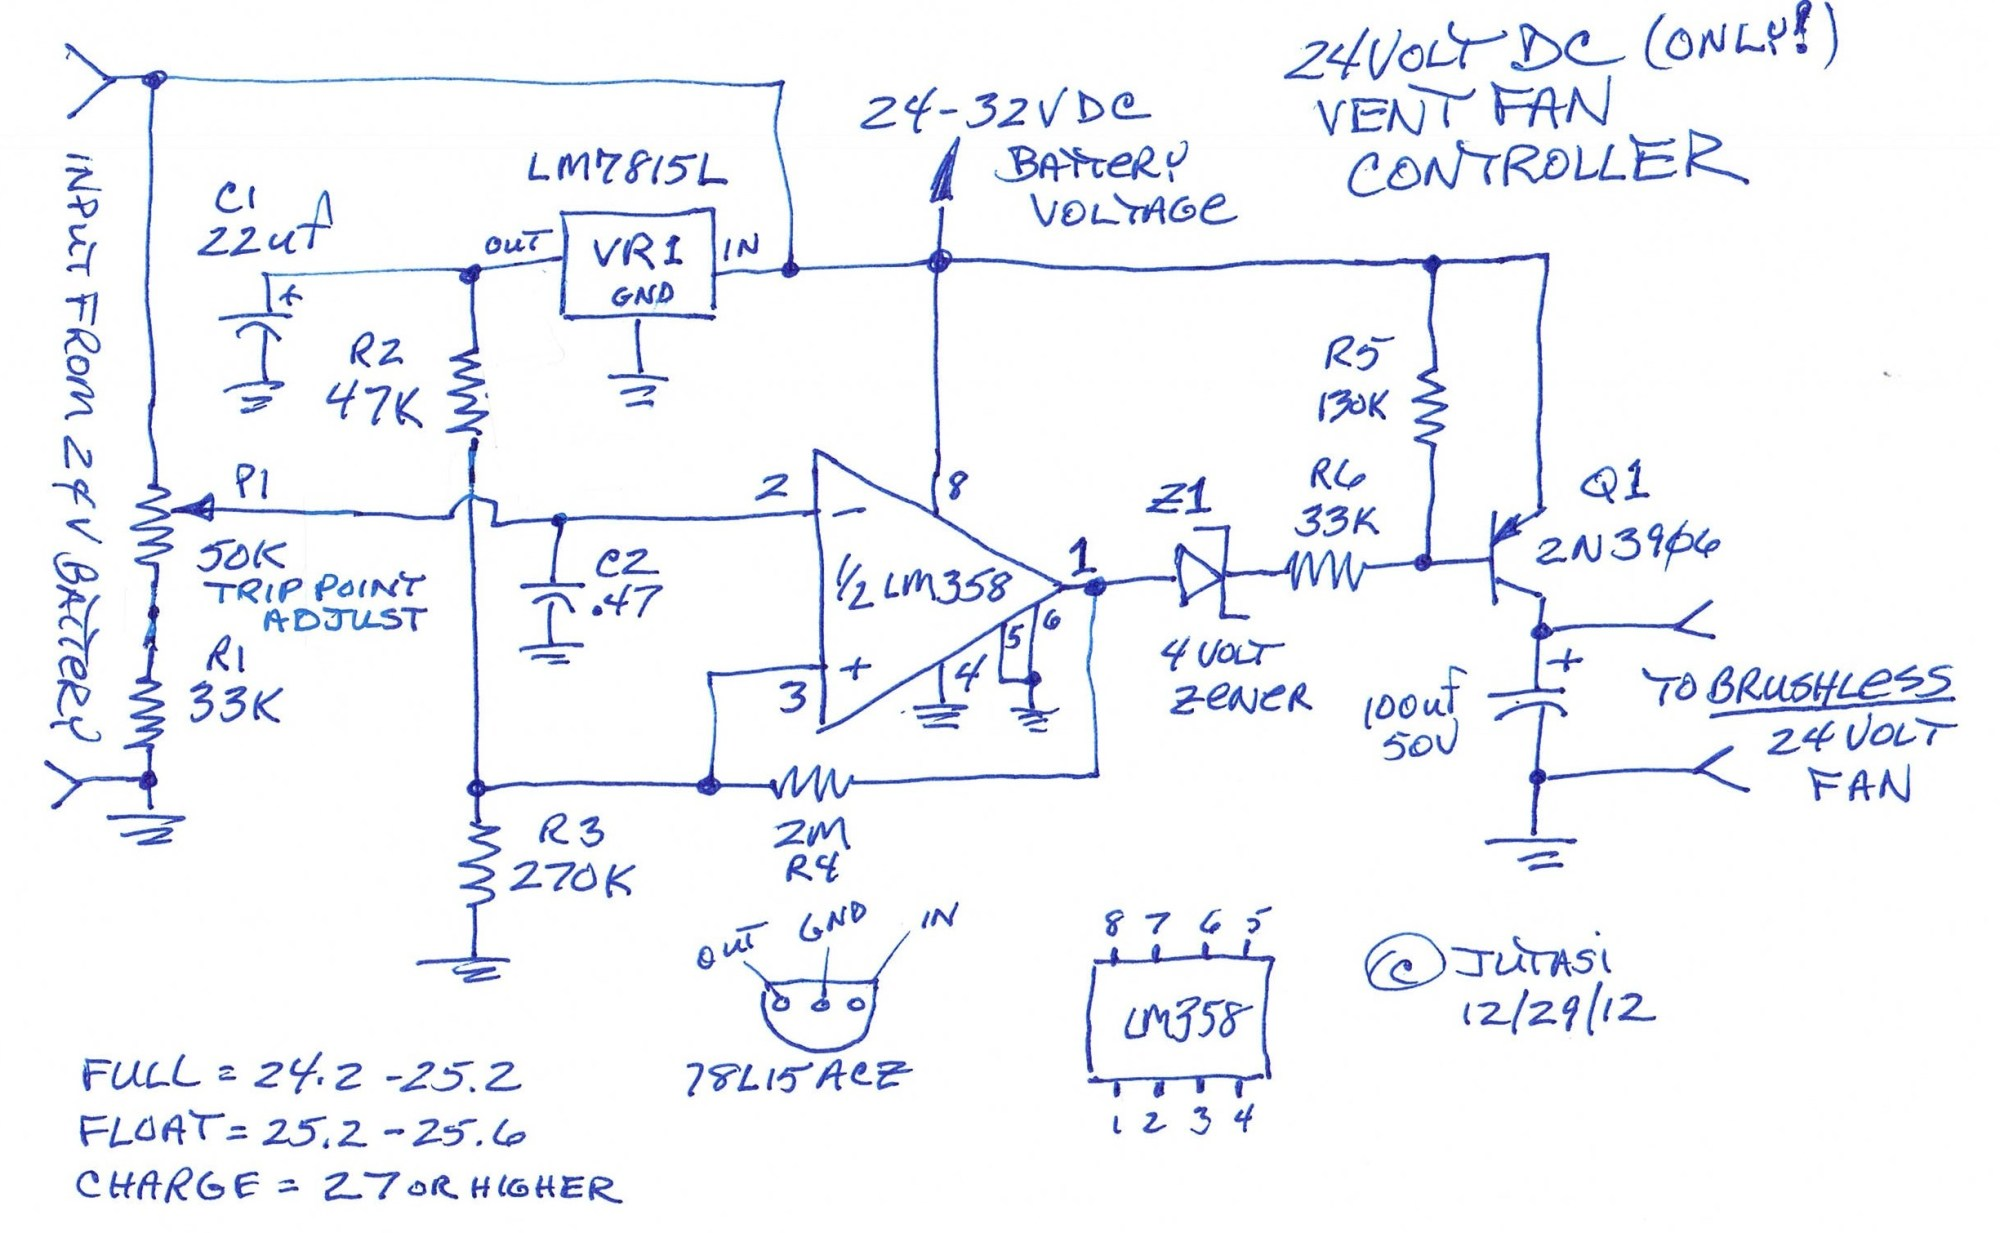 hight resolution of 24 volt battery box vent fan control circuit